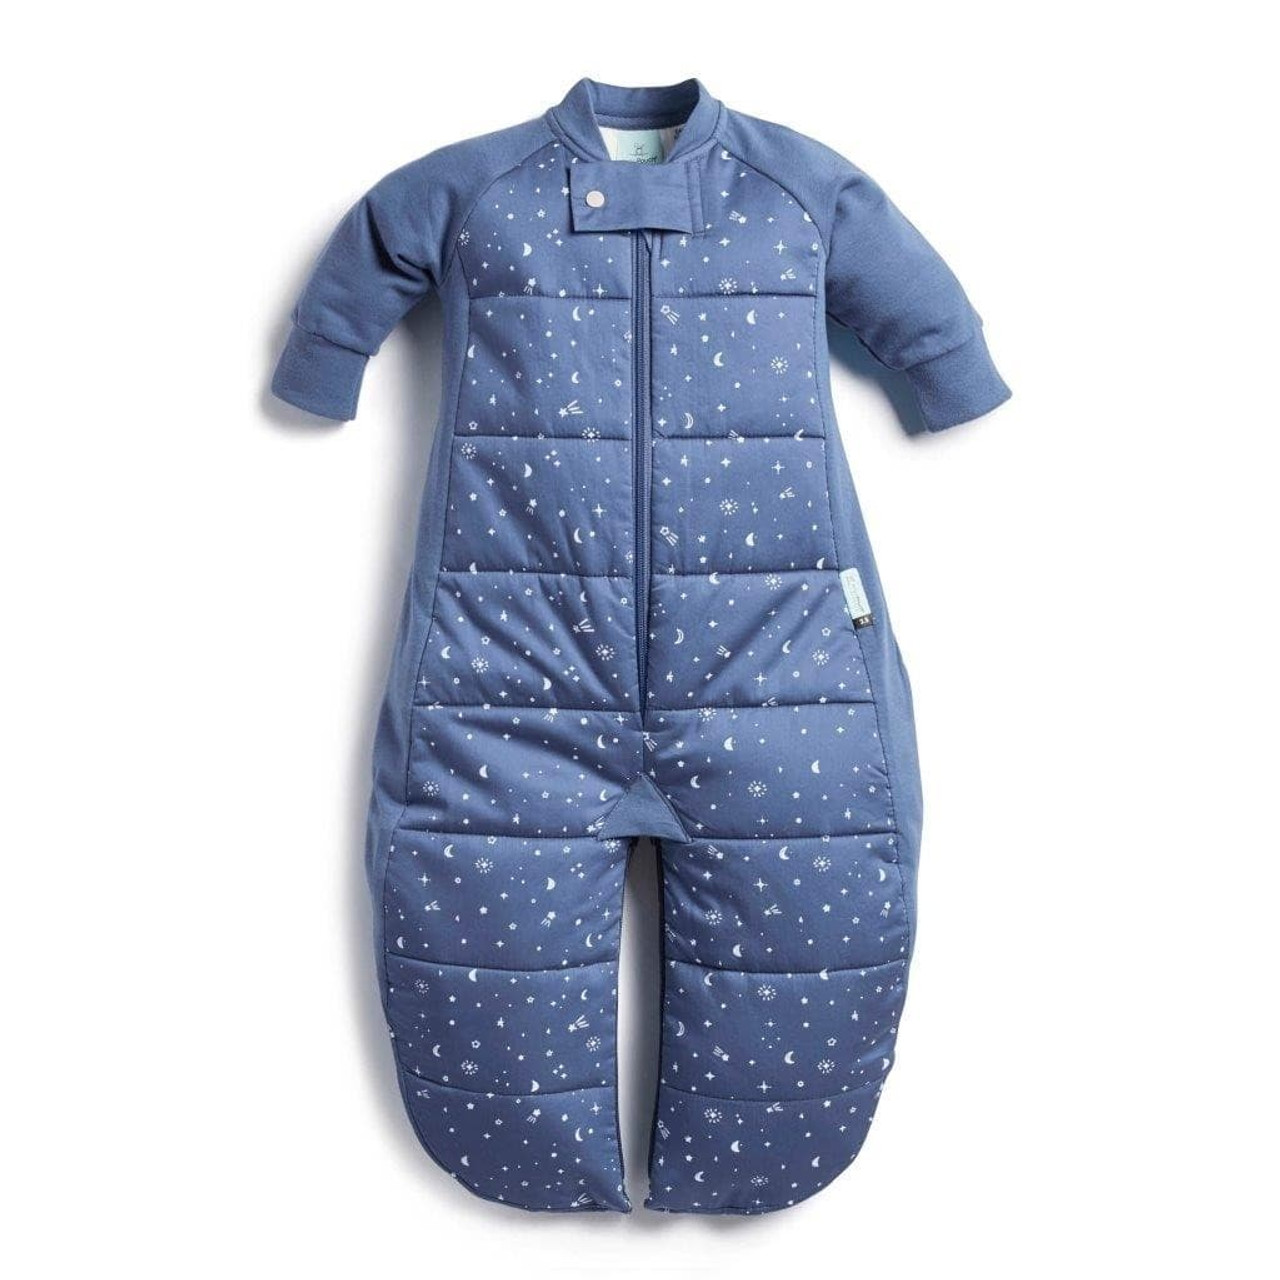 Ergopouch Sleepsuit Bag 3.5 Tog 2-4 Years NIGHT SKY at Baby Barn Discounts